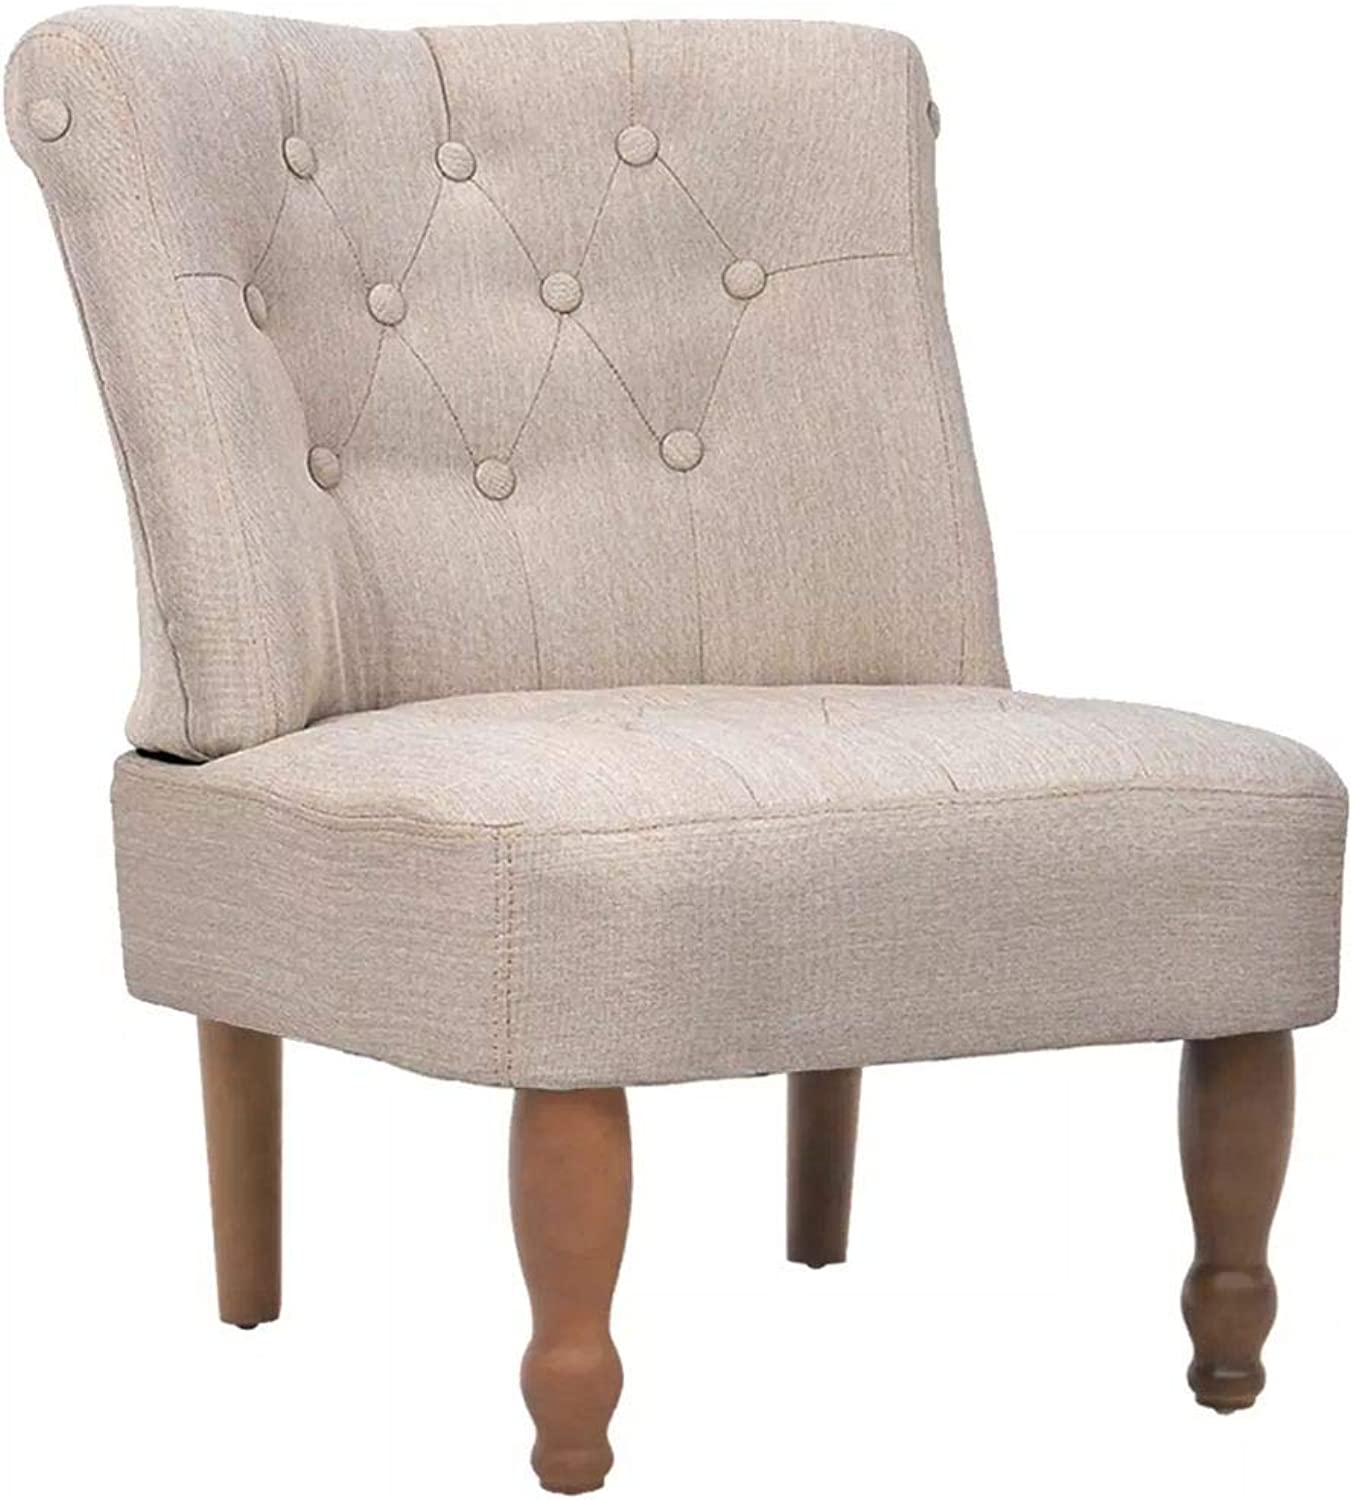 Festnight French Dining Chair Retro Style Dining Room Furniture Creme